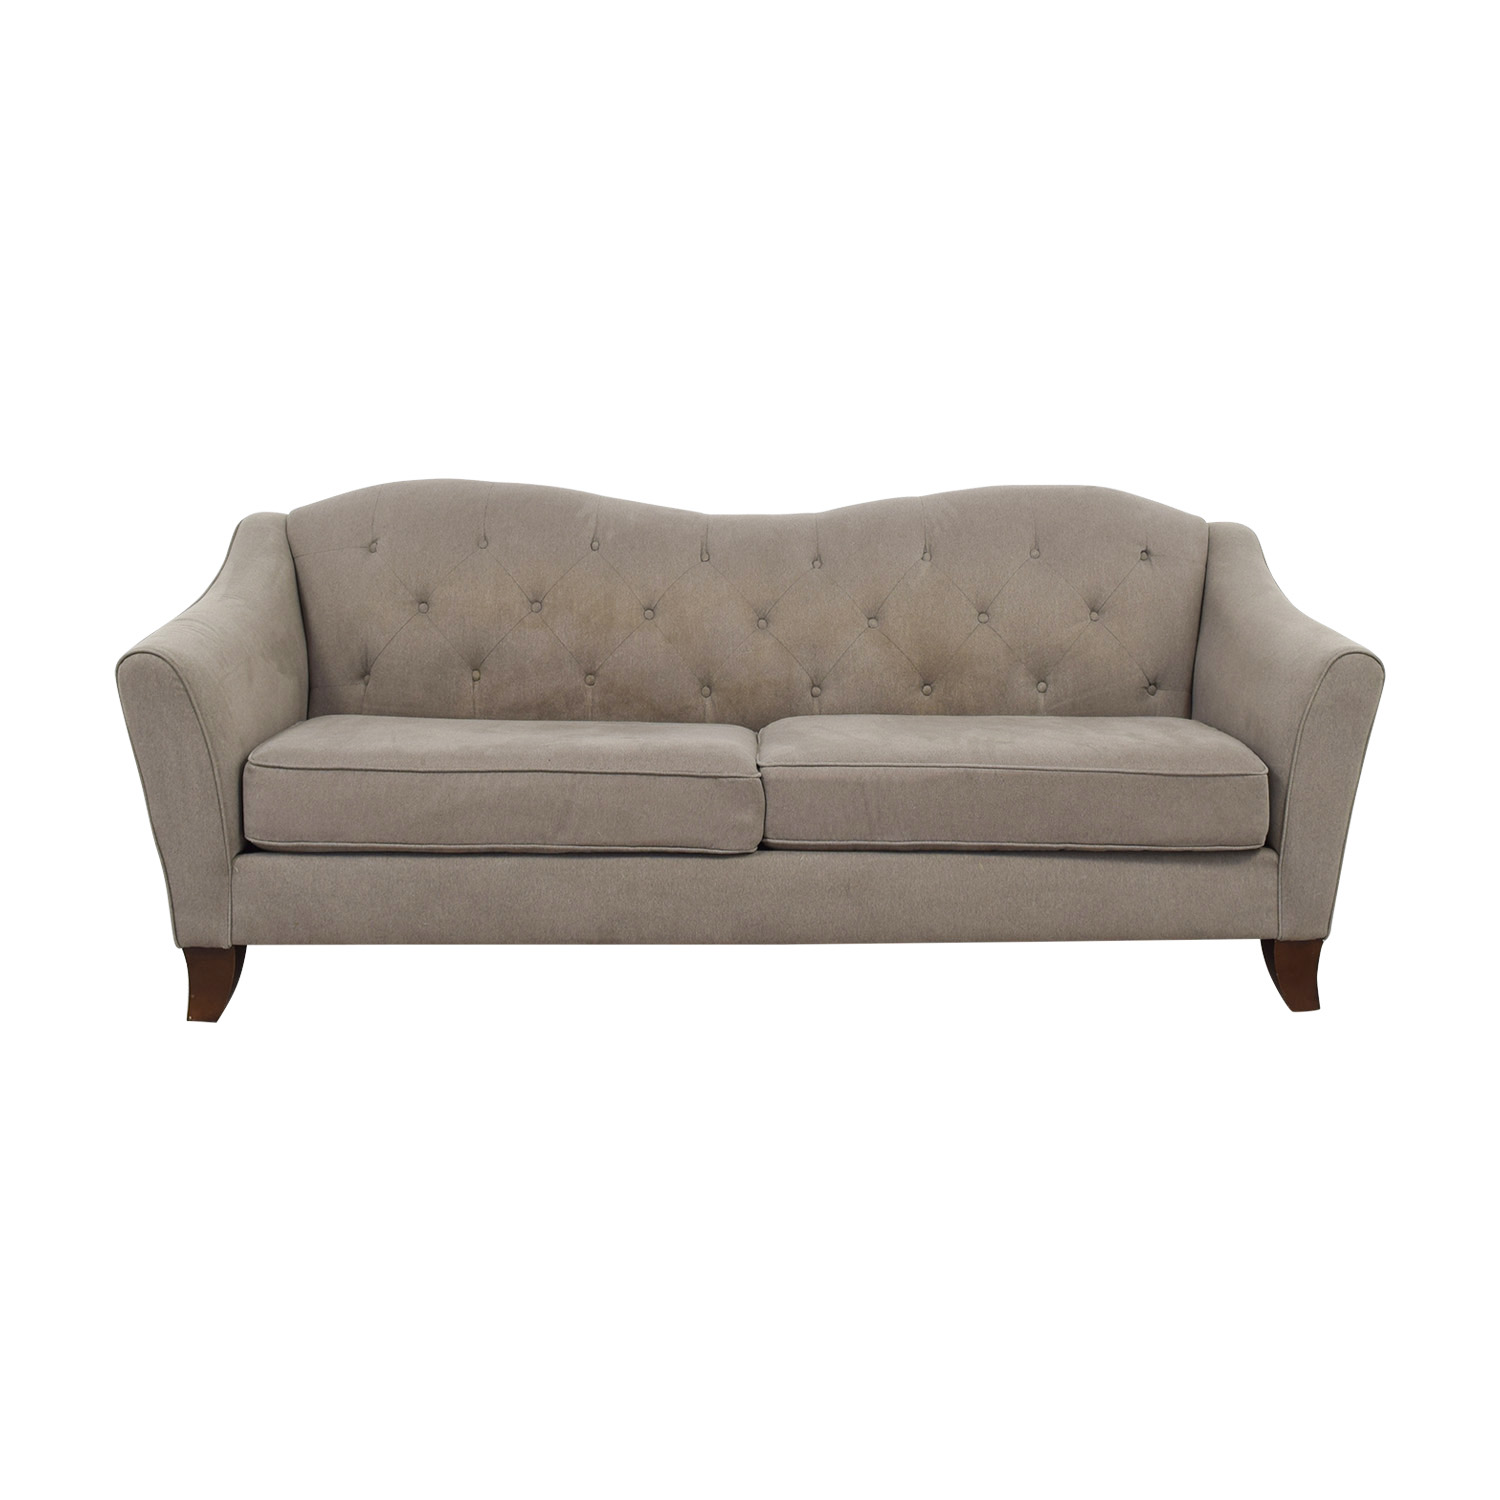 size loveseat curved french ideas sectionalcurved images tablecurved fearsome sectional formal and reviews of sofa sofacurved full sofas loveseats back